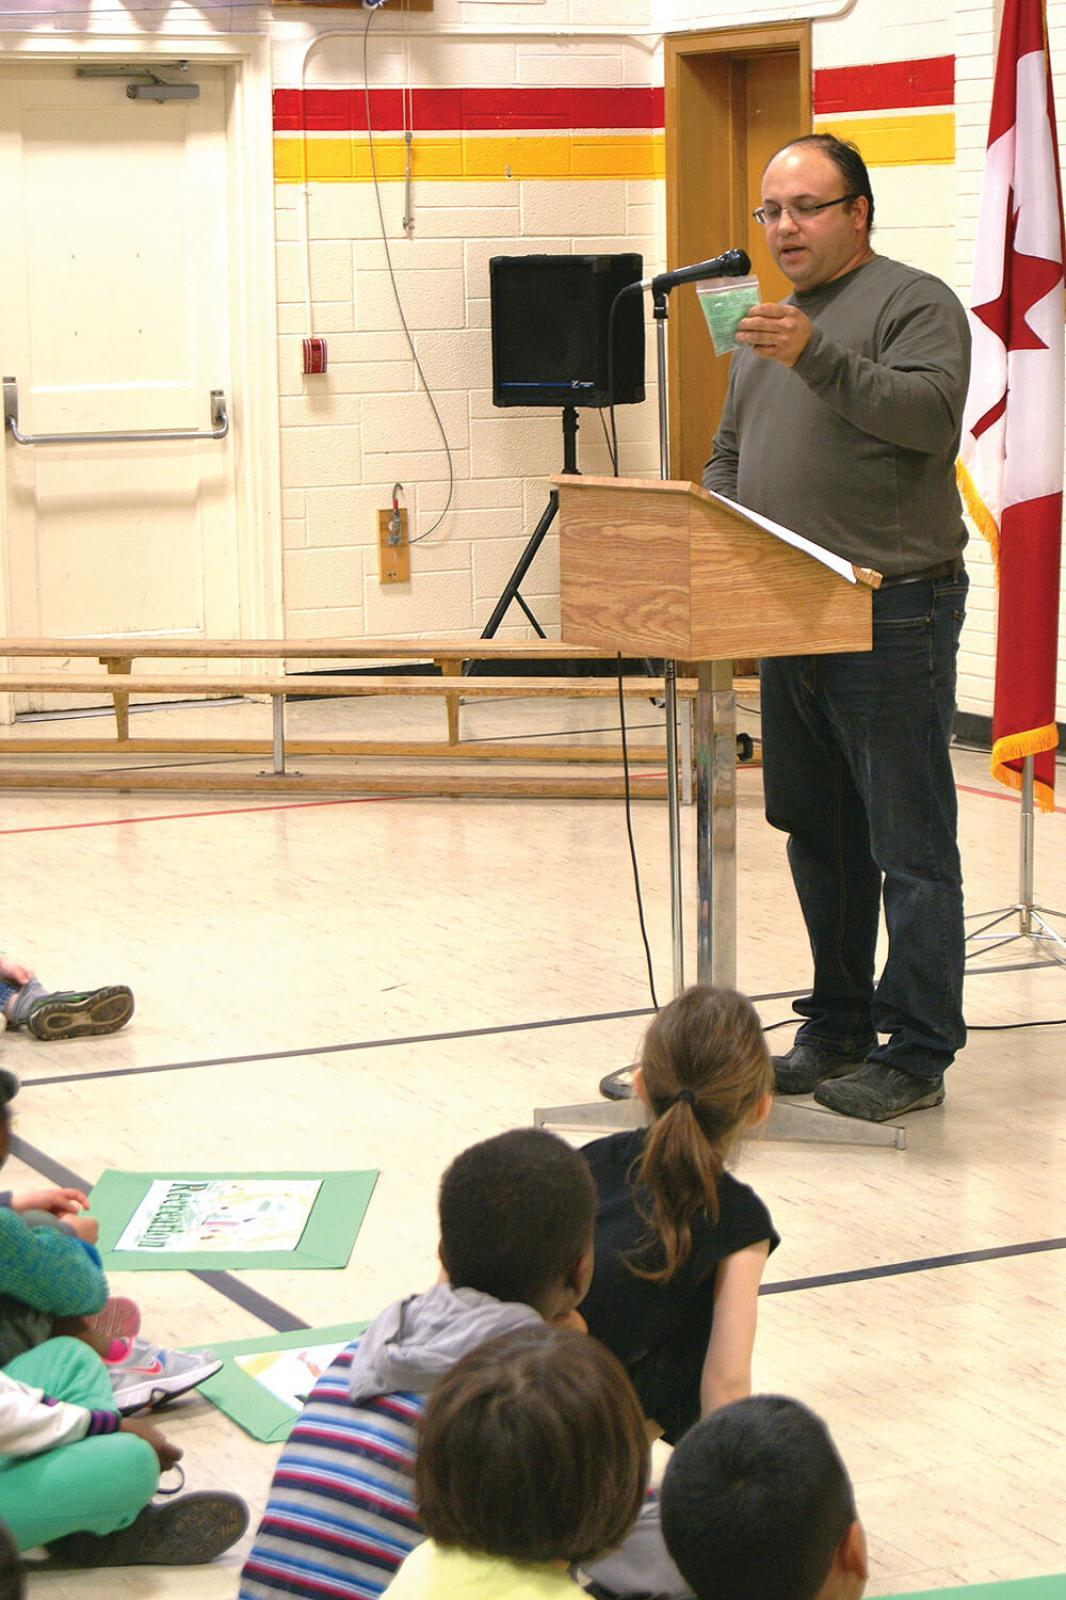 Golden Horseshoe president Fiore Zenone explains to students that each of them will receive a package of tree seeds to take home.